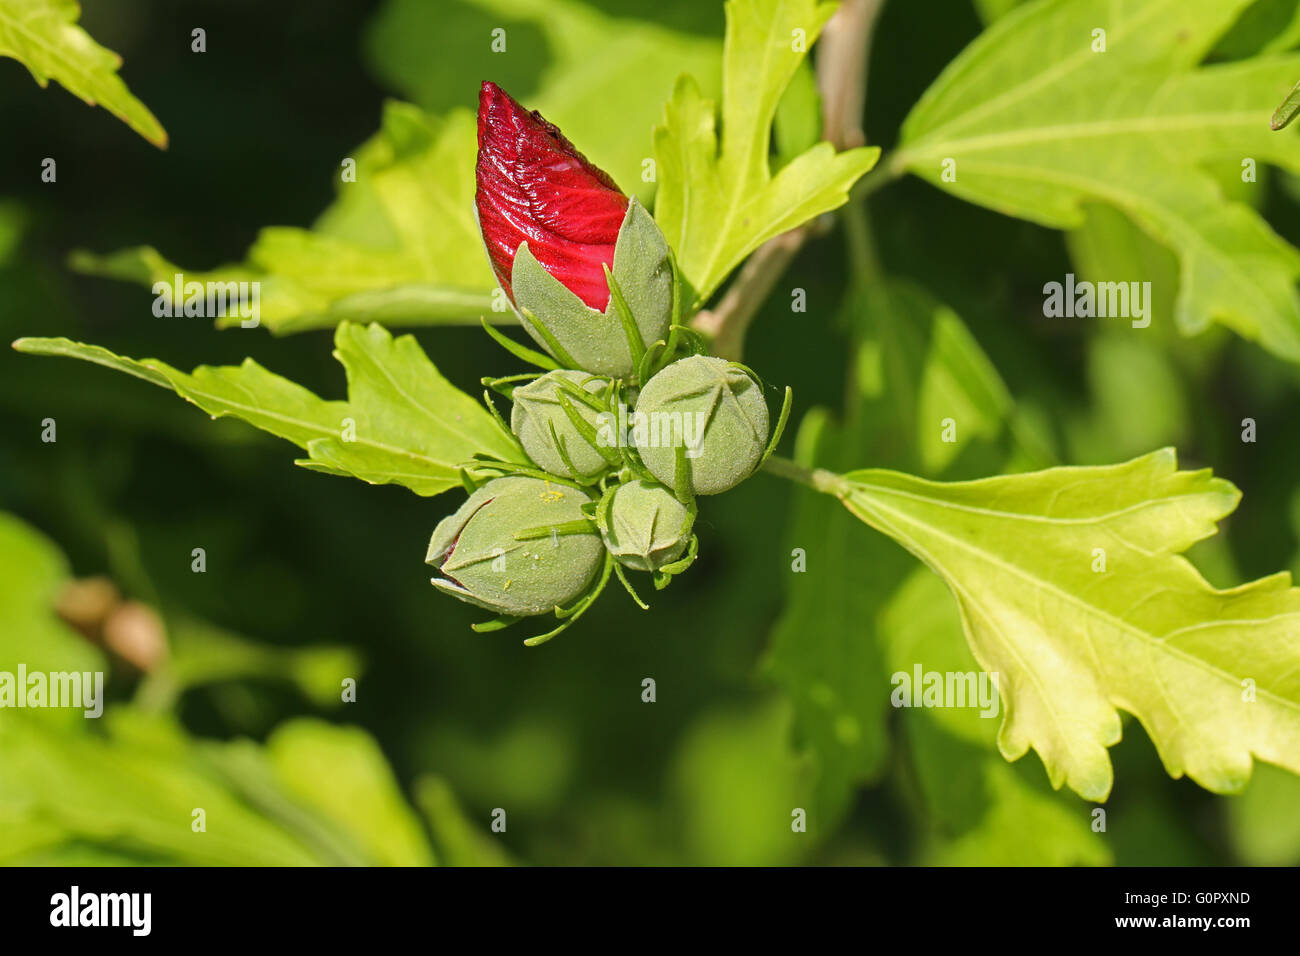 hibiscus, lavatera, malva alcea or mallow hibiscus bud about to flower in Italy in summer Stock Photo